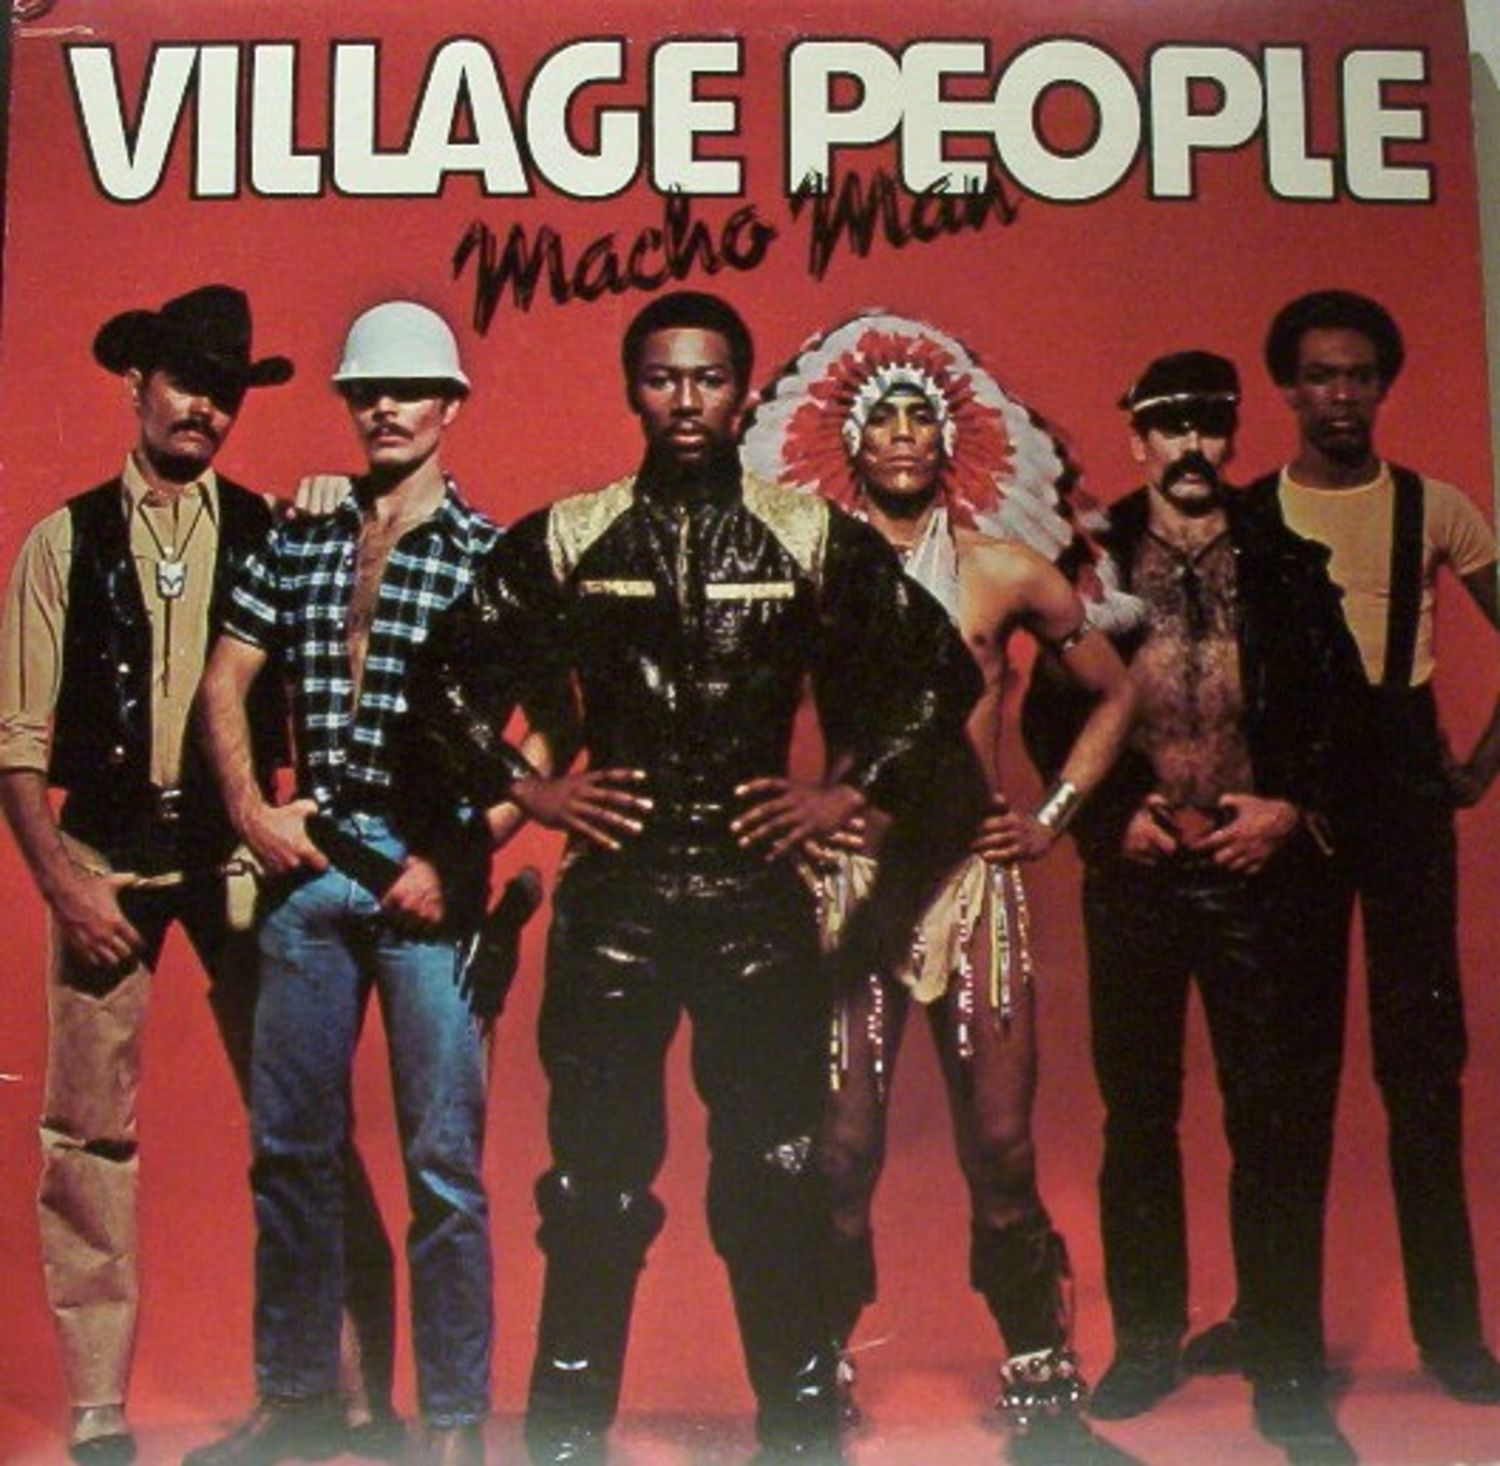 village people albums Google Search 40th anniversary